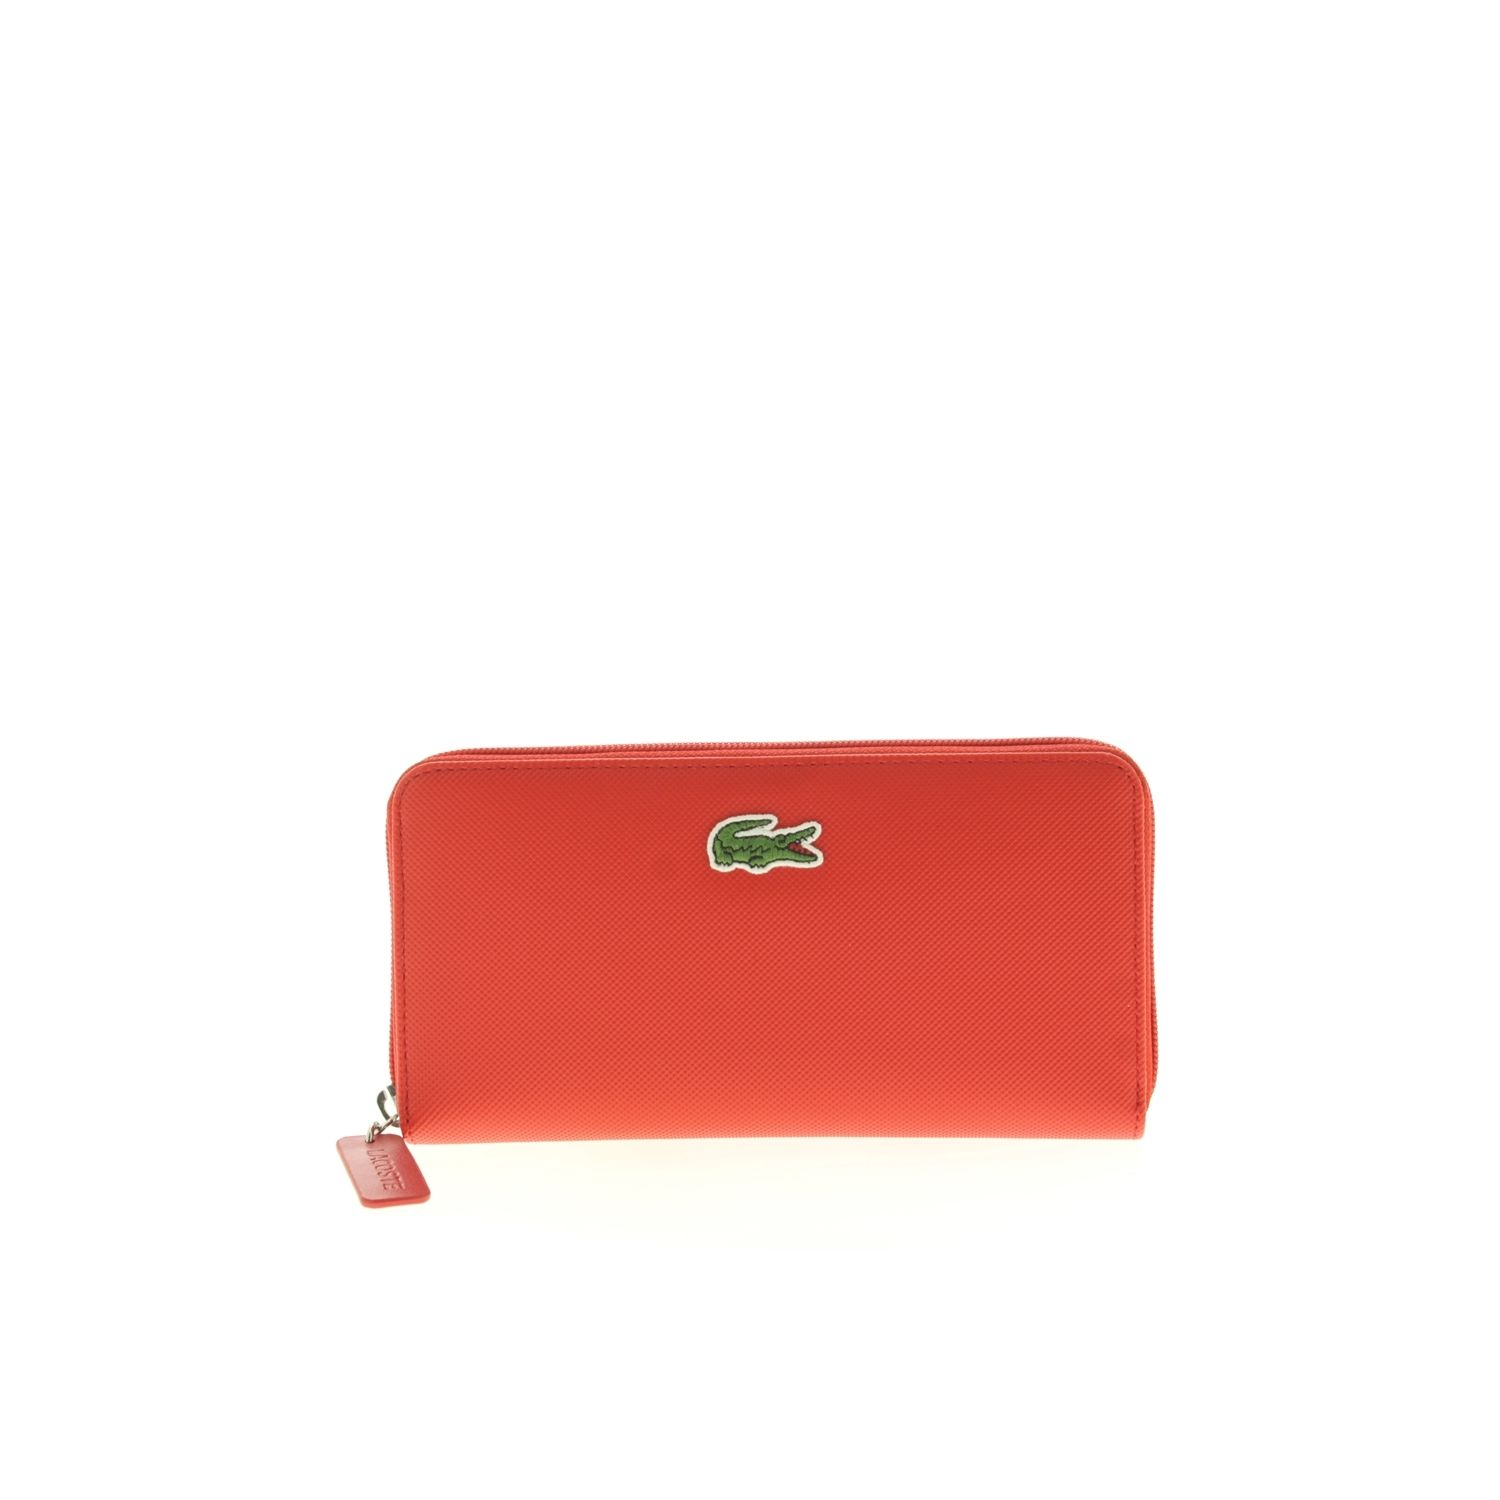 97990cbab8 LACOSTE- Portefeuille L Zip Wallet High Risk Red - Rouge